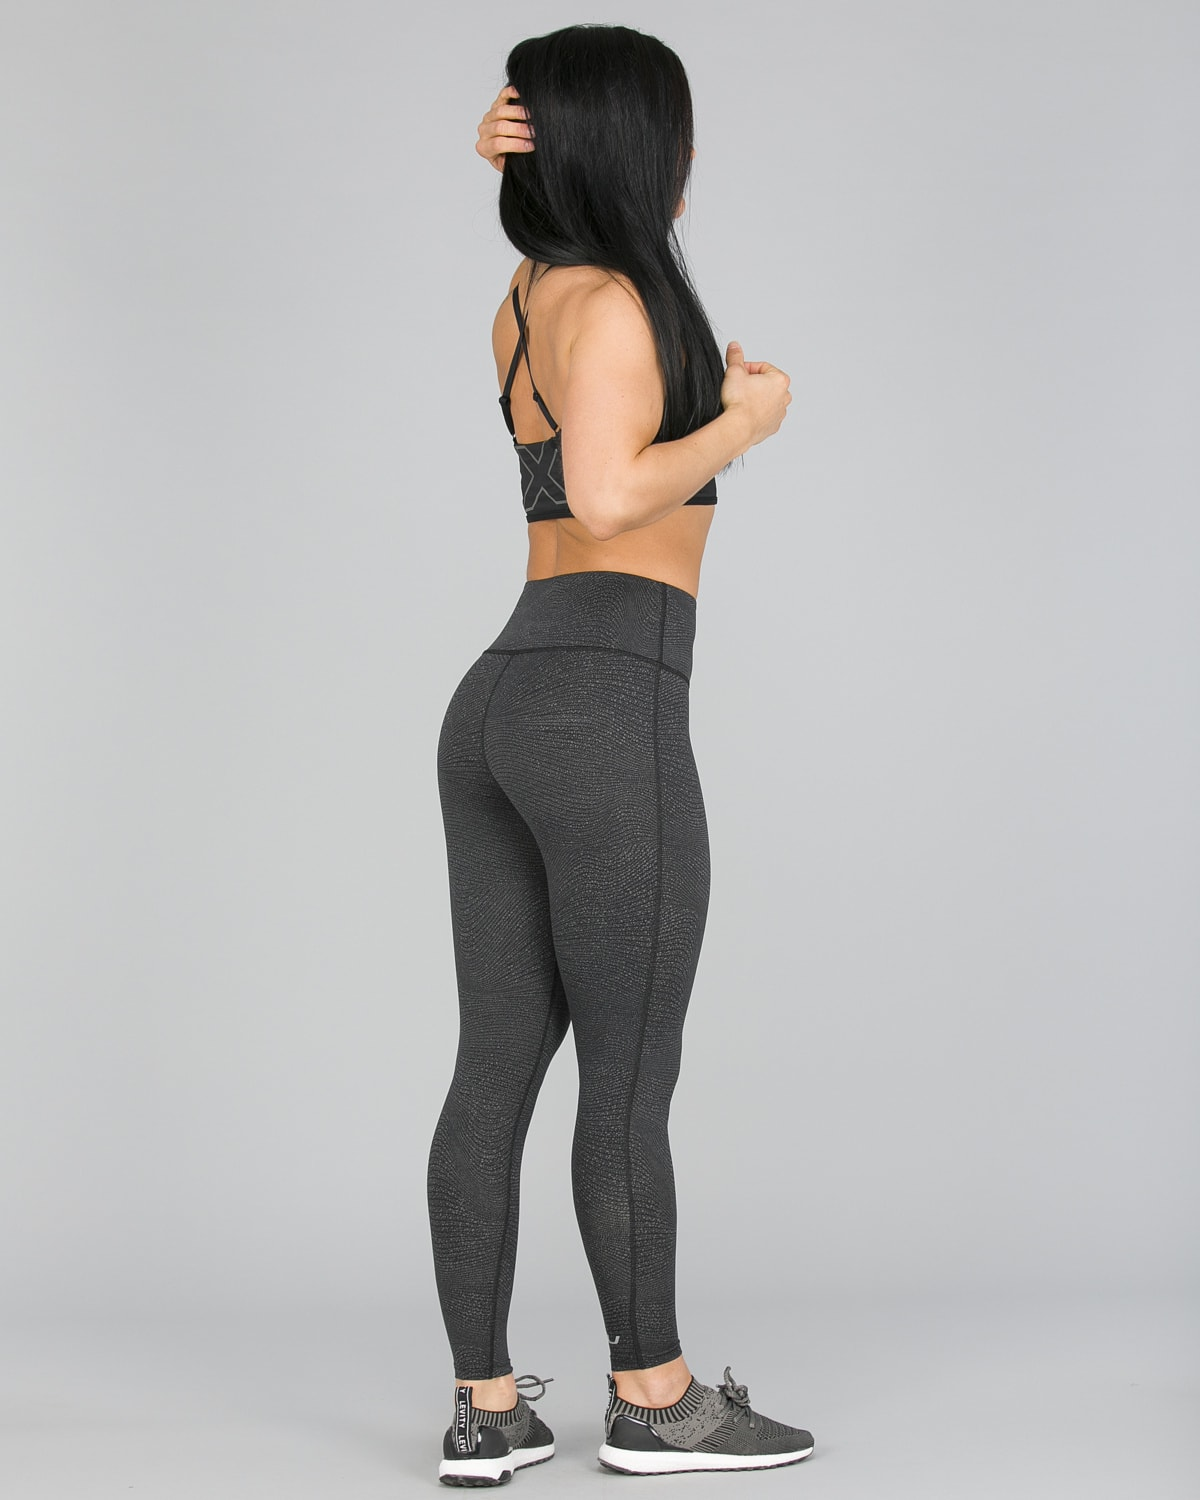 2XU Fitness Hi-Rise Comp Tights Women – Wave Spot Charcoal:Silver4